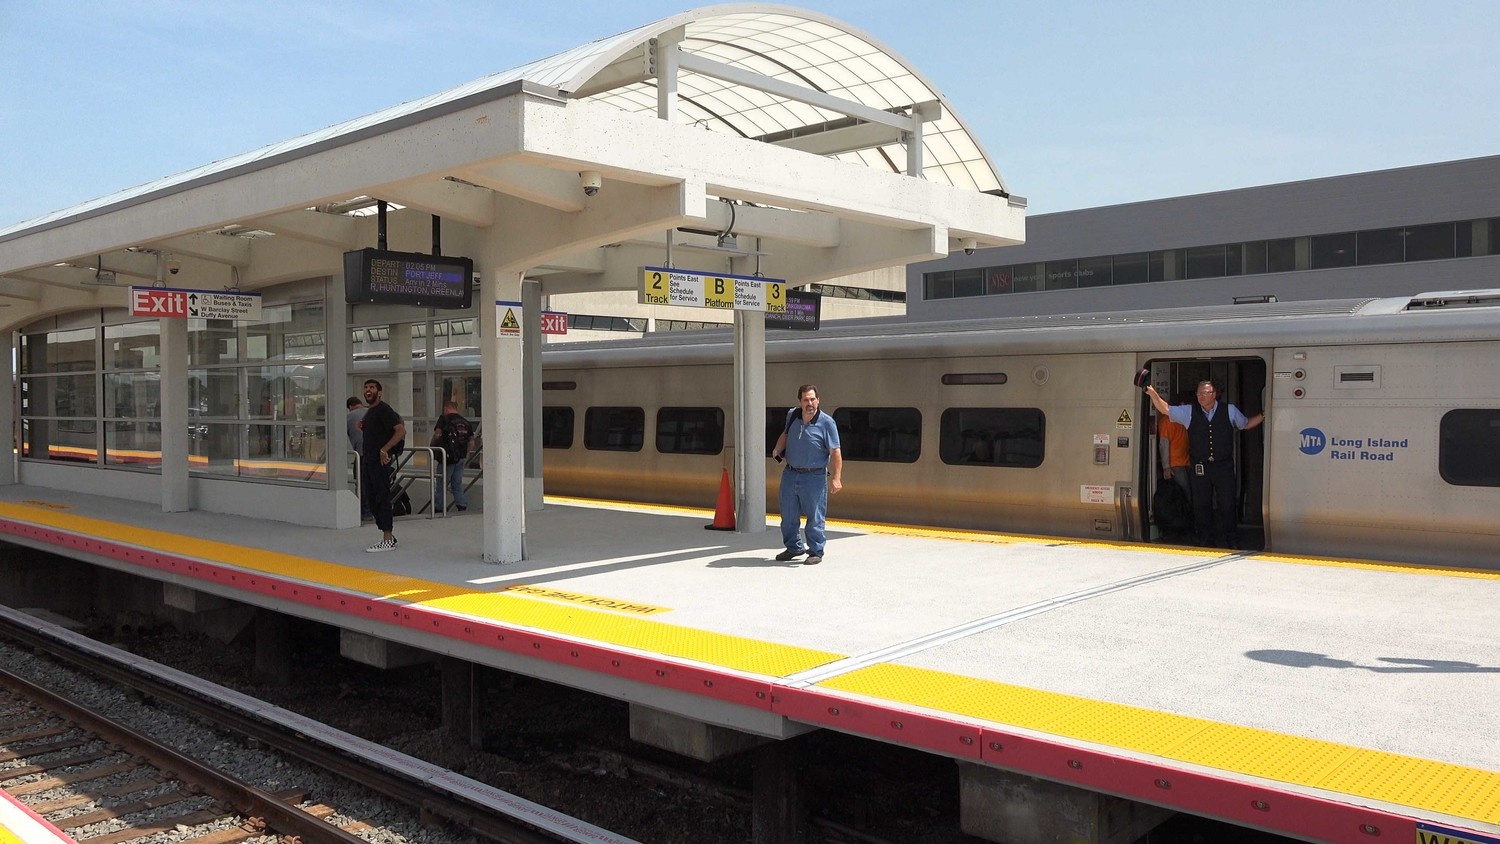 Long Island Rail Road President Phillip Eng approved a $17.9 million project on Sept. 5 to upgrade the Lynbrook station. Above, a rendering of the station's platforms and canopies when the project is completed at the end of 2020.